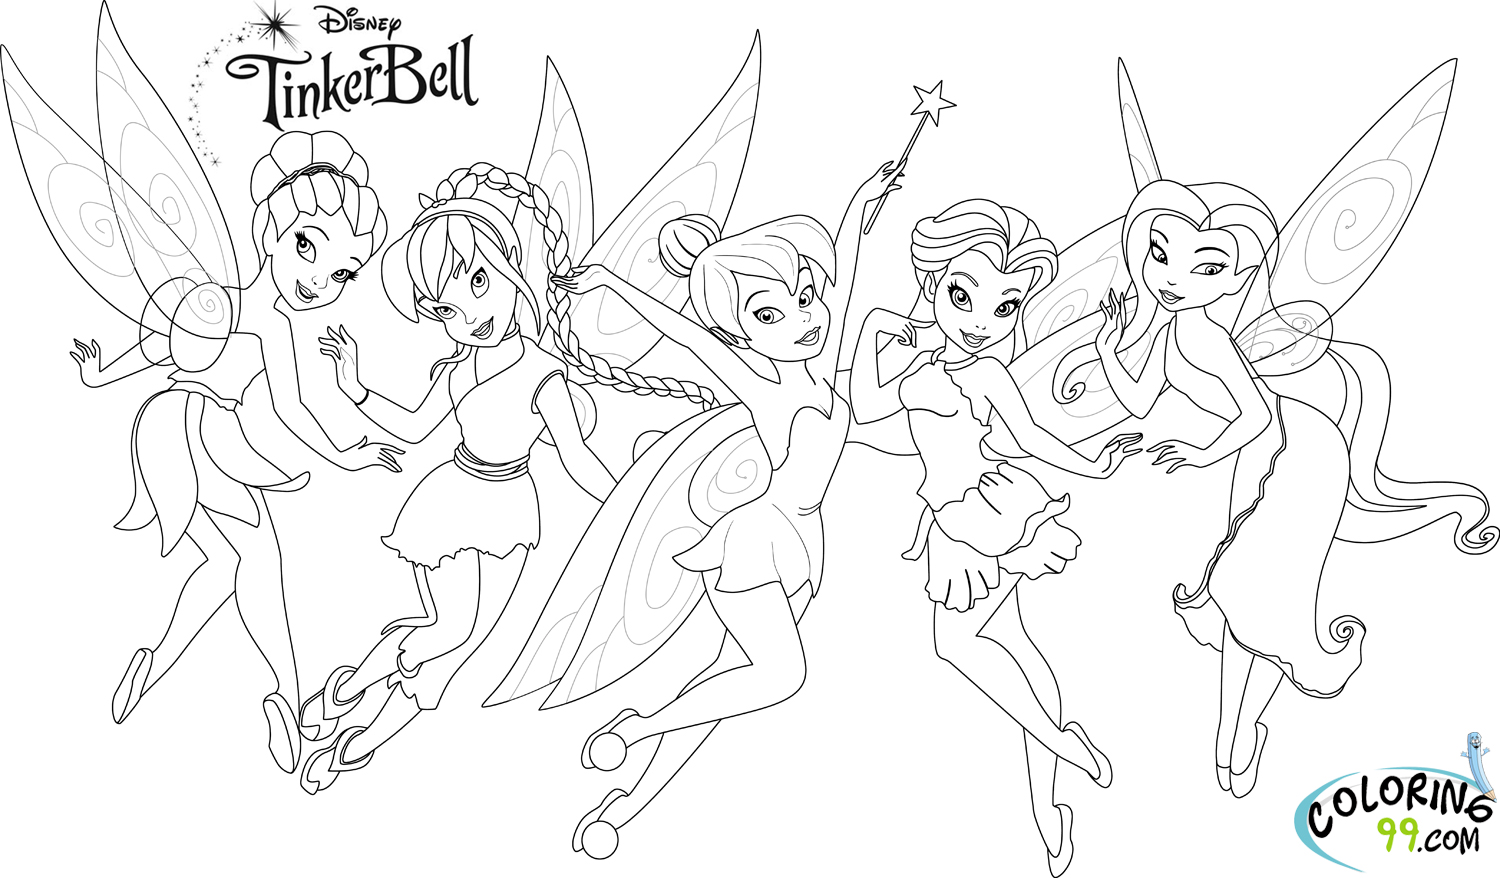 tinkerbell coloring pages photo - 1